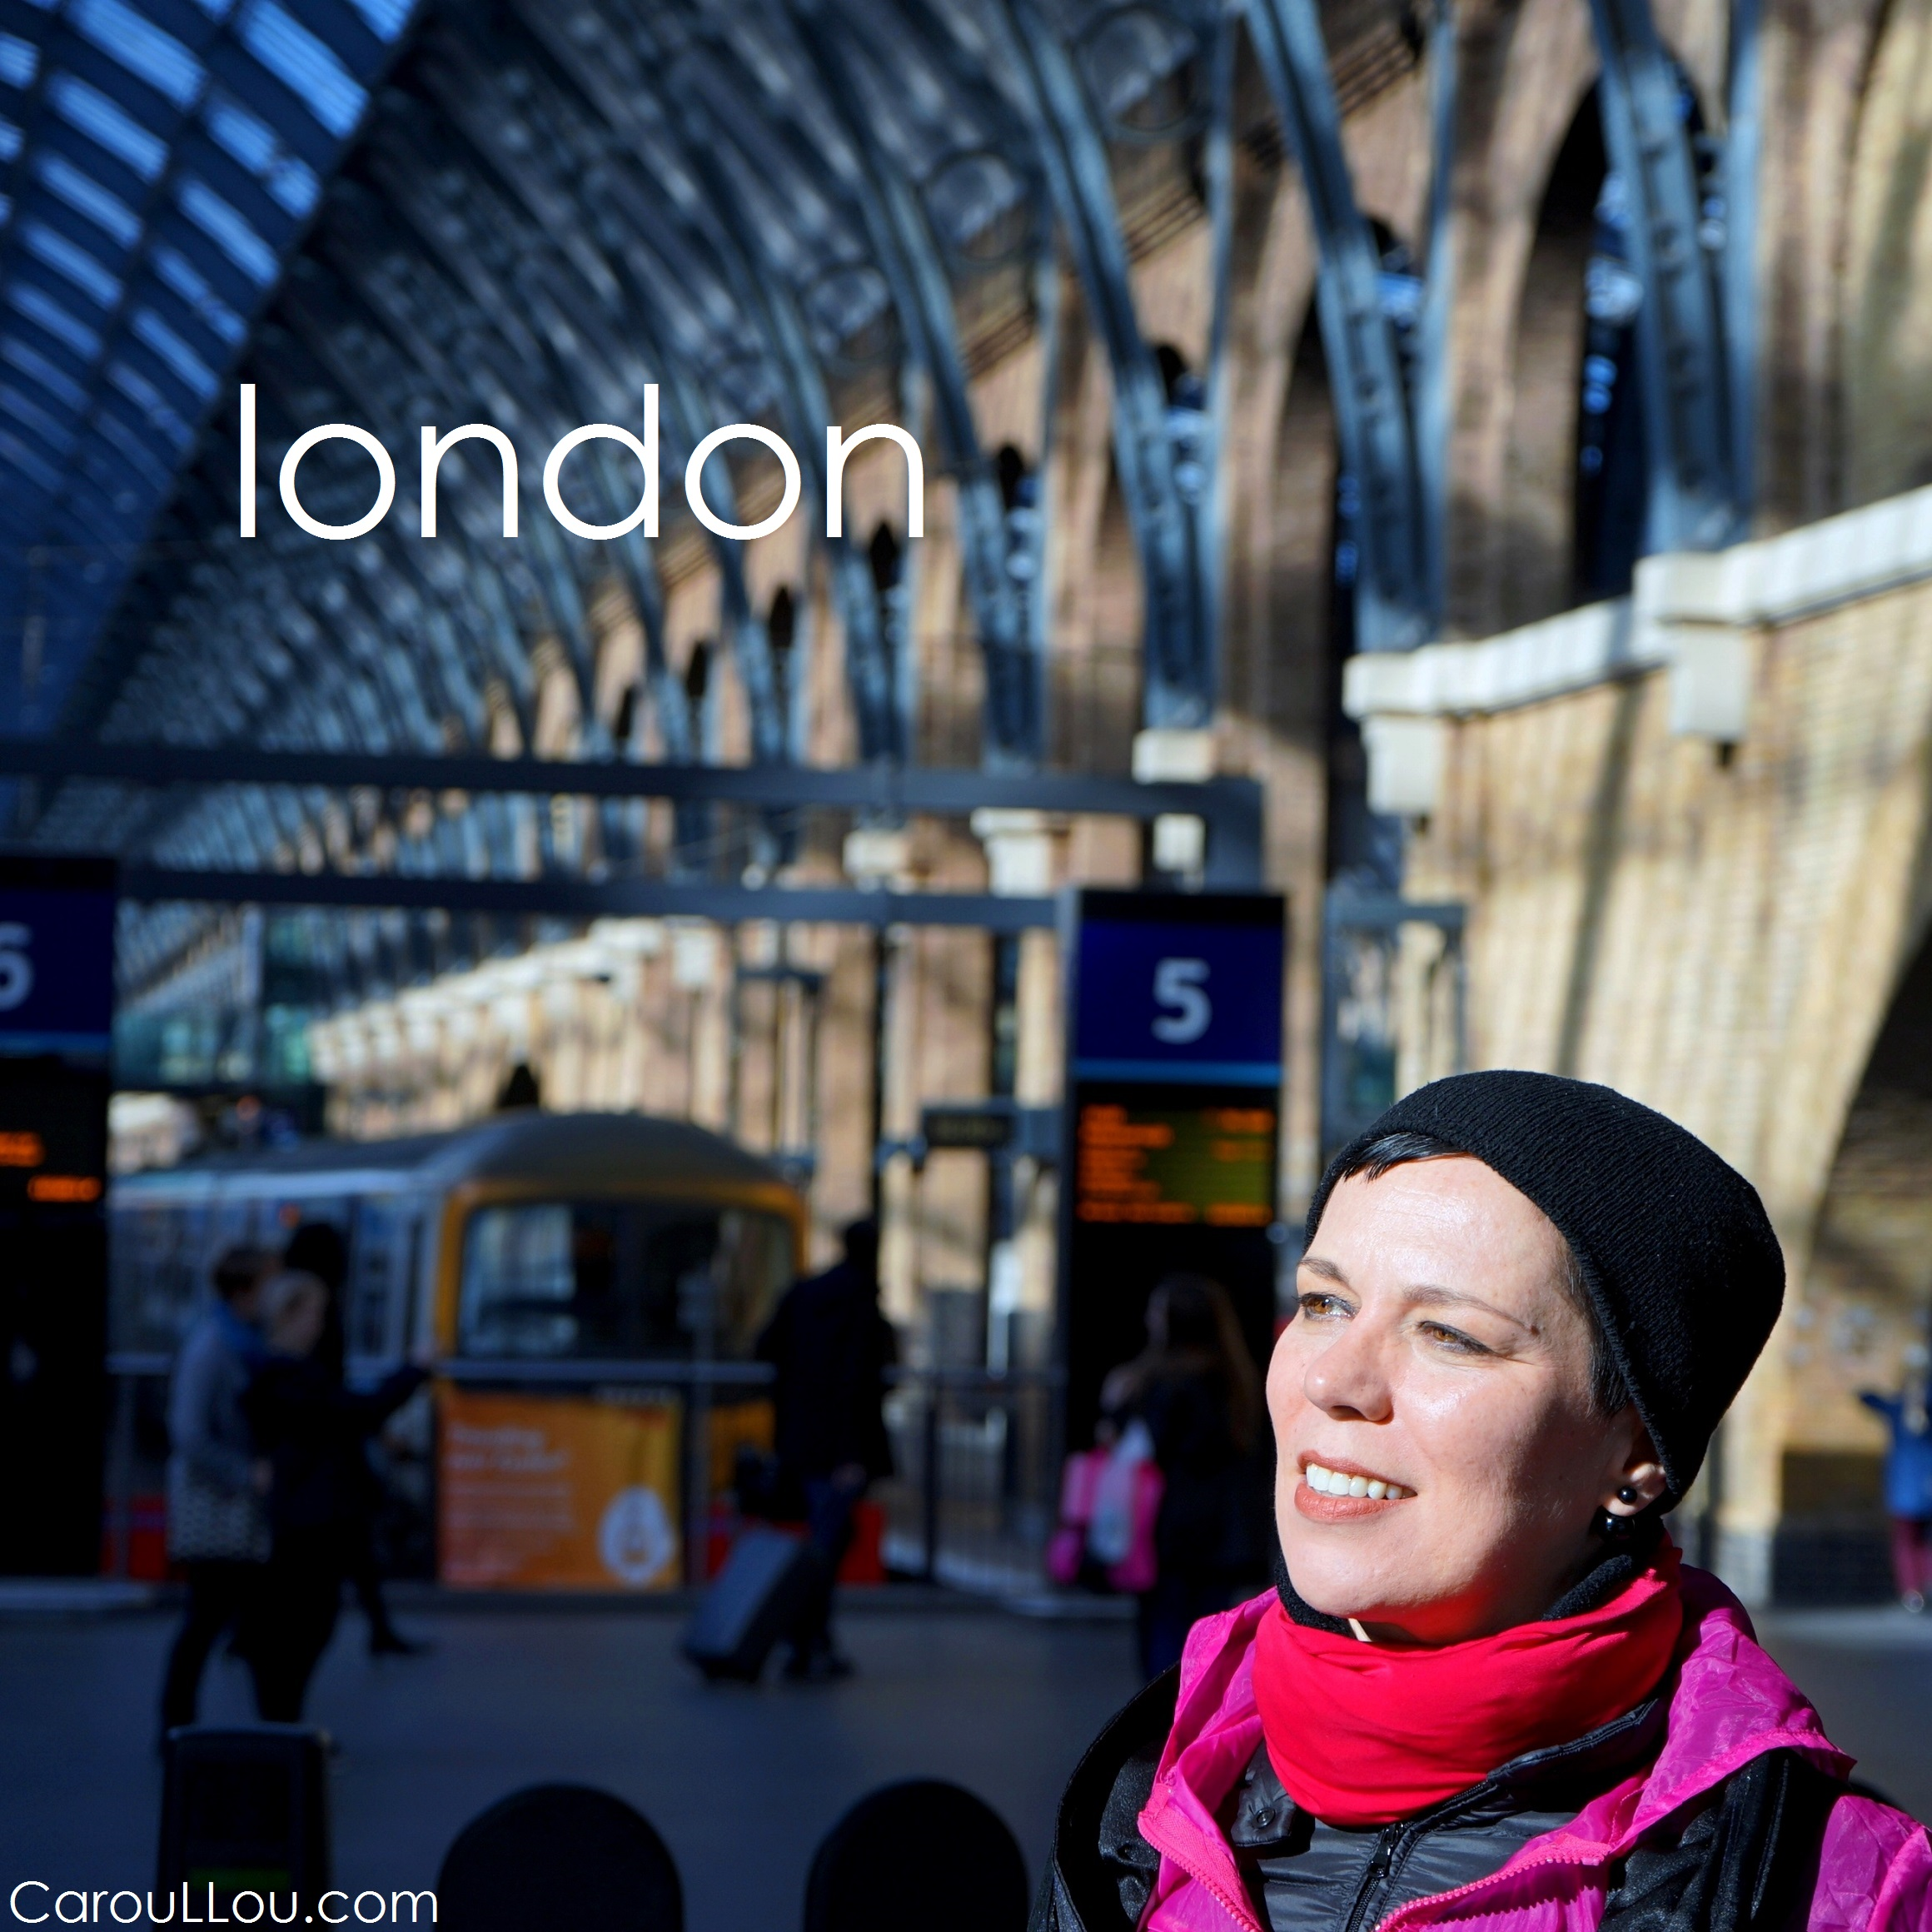 CarouLLou.com CarouLLou in London train station +-